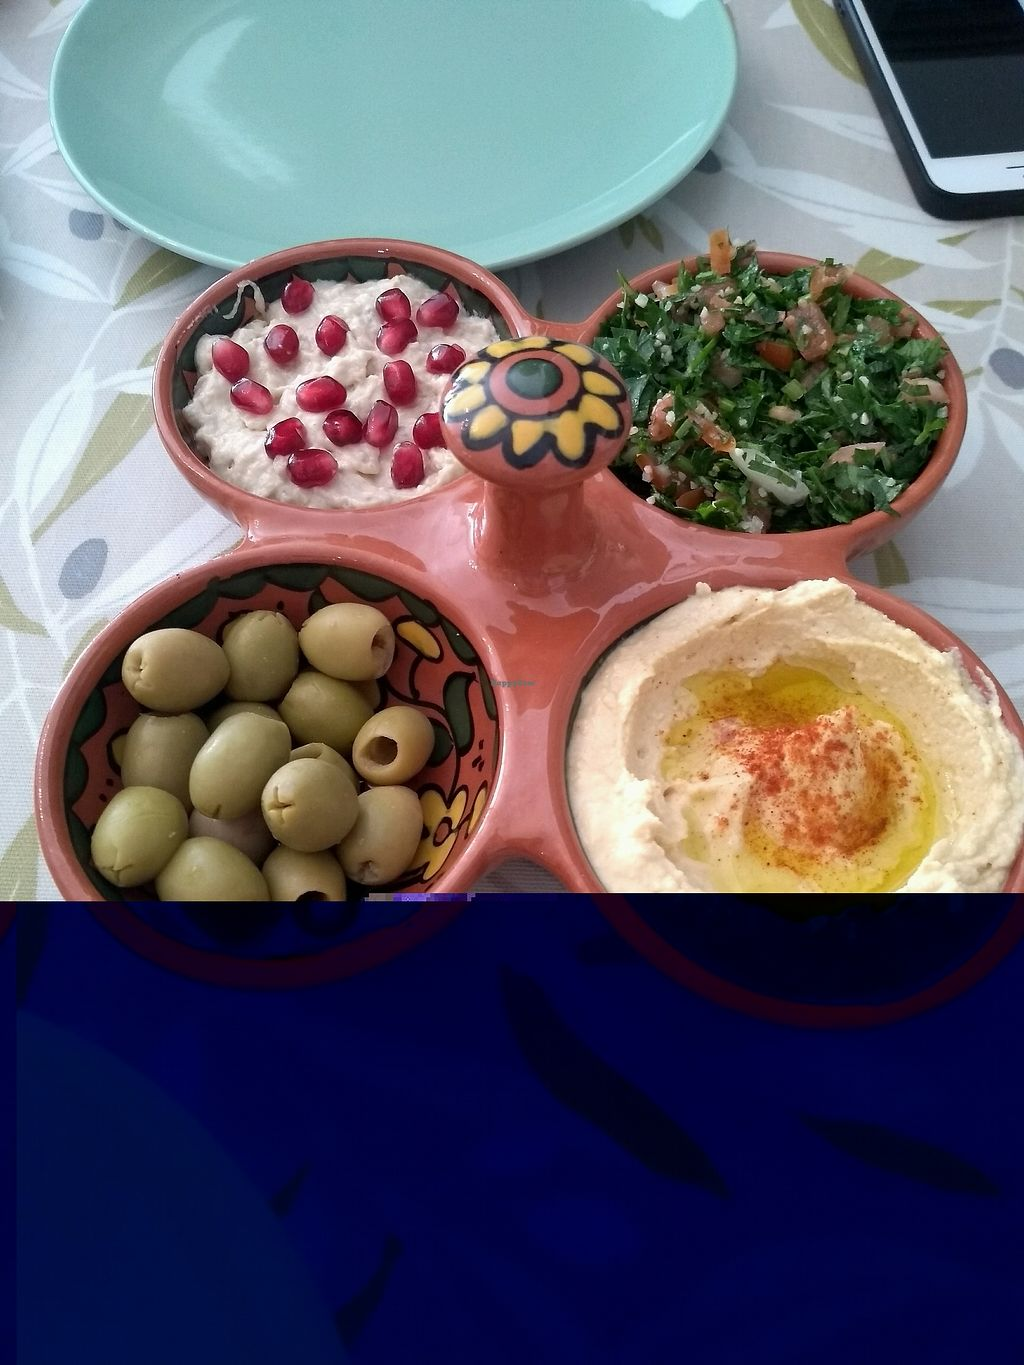 """Photo of Cafe Palestina  by <a href=""""/members/profile/sparklelilz"""">sparklelilz</a> <br/>Delicious Palestinian breakfast! <br/> February 9, 2018  - <a href='/contact/abuse/image/110946/356814'>Report</a>"""